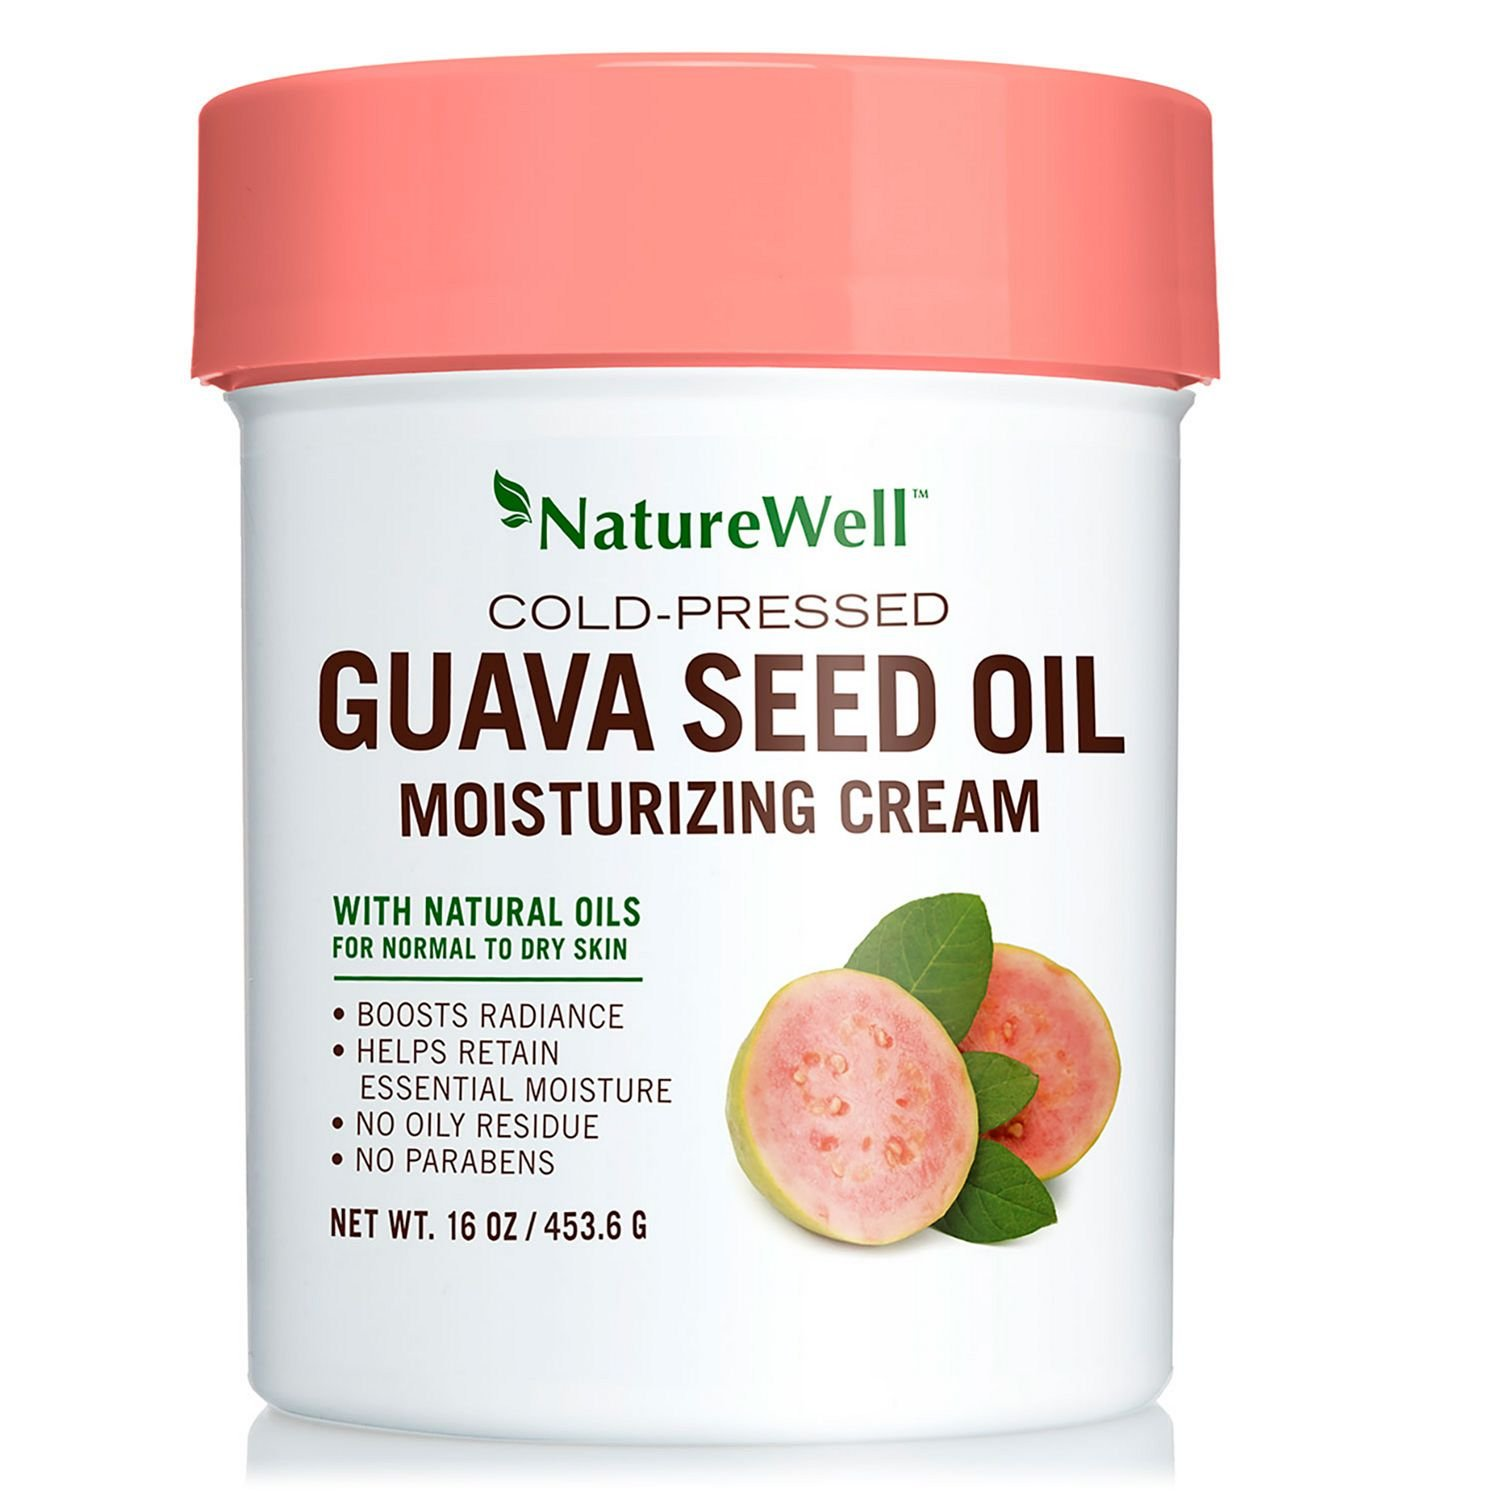 NatureWell Cold-Pressed Guava Seed Oil Moisturizing Cream, 16 oz